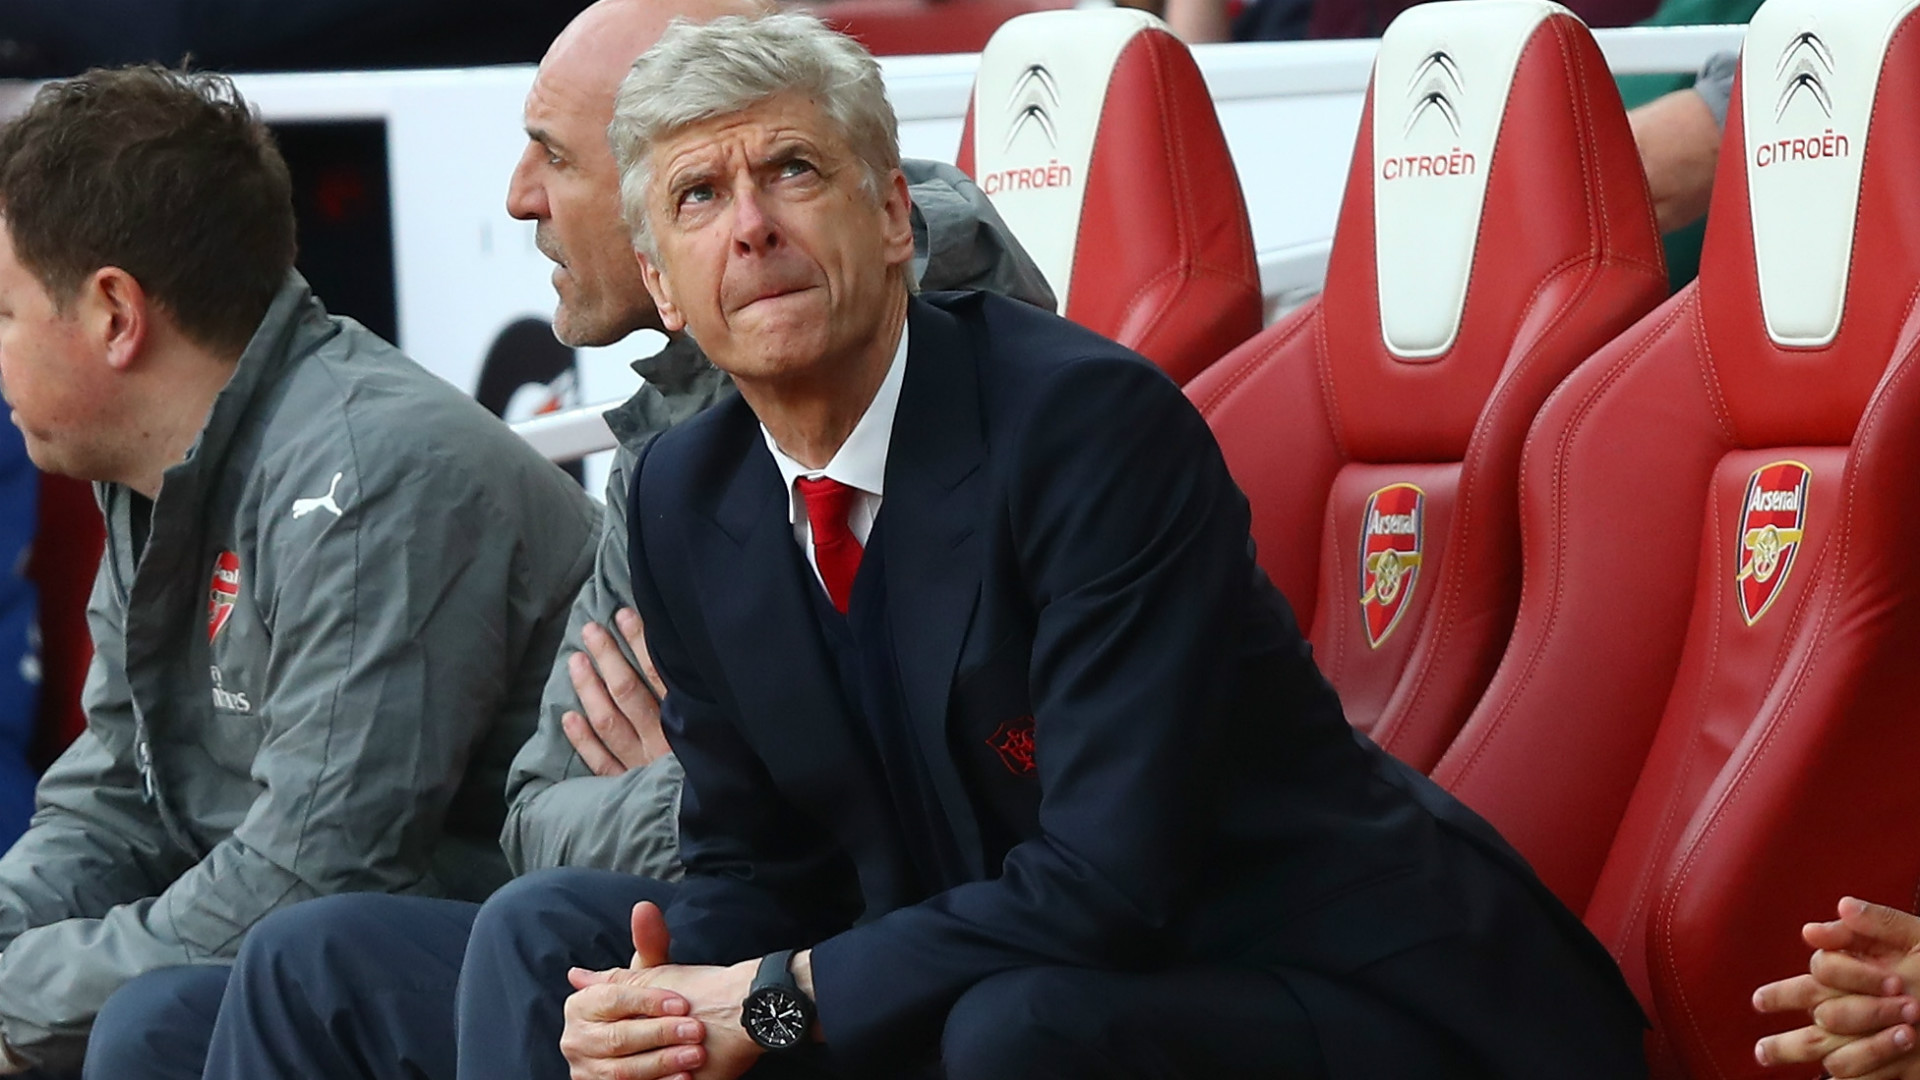 'Arsenal fans think they have a RIGHT to trophies… Wenger will be fine'